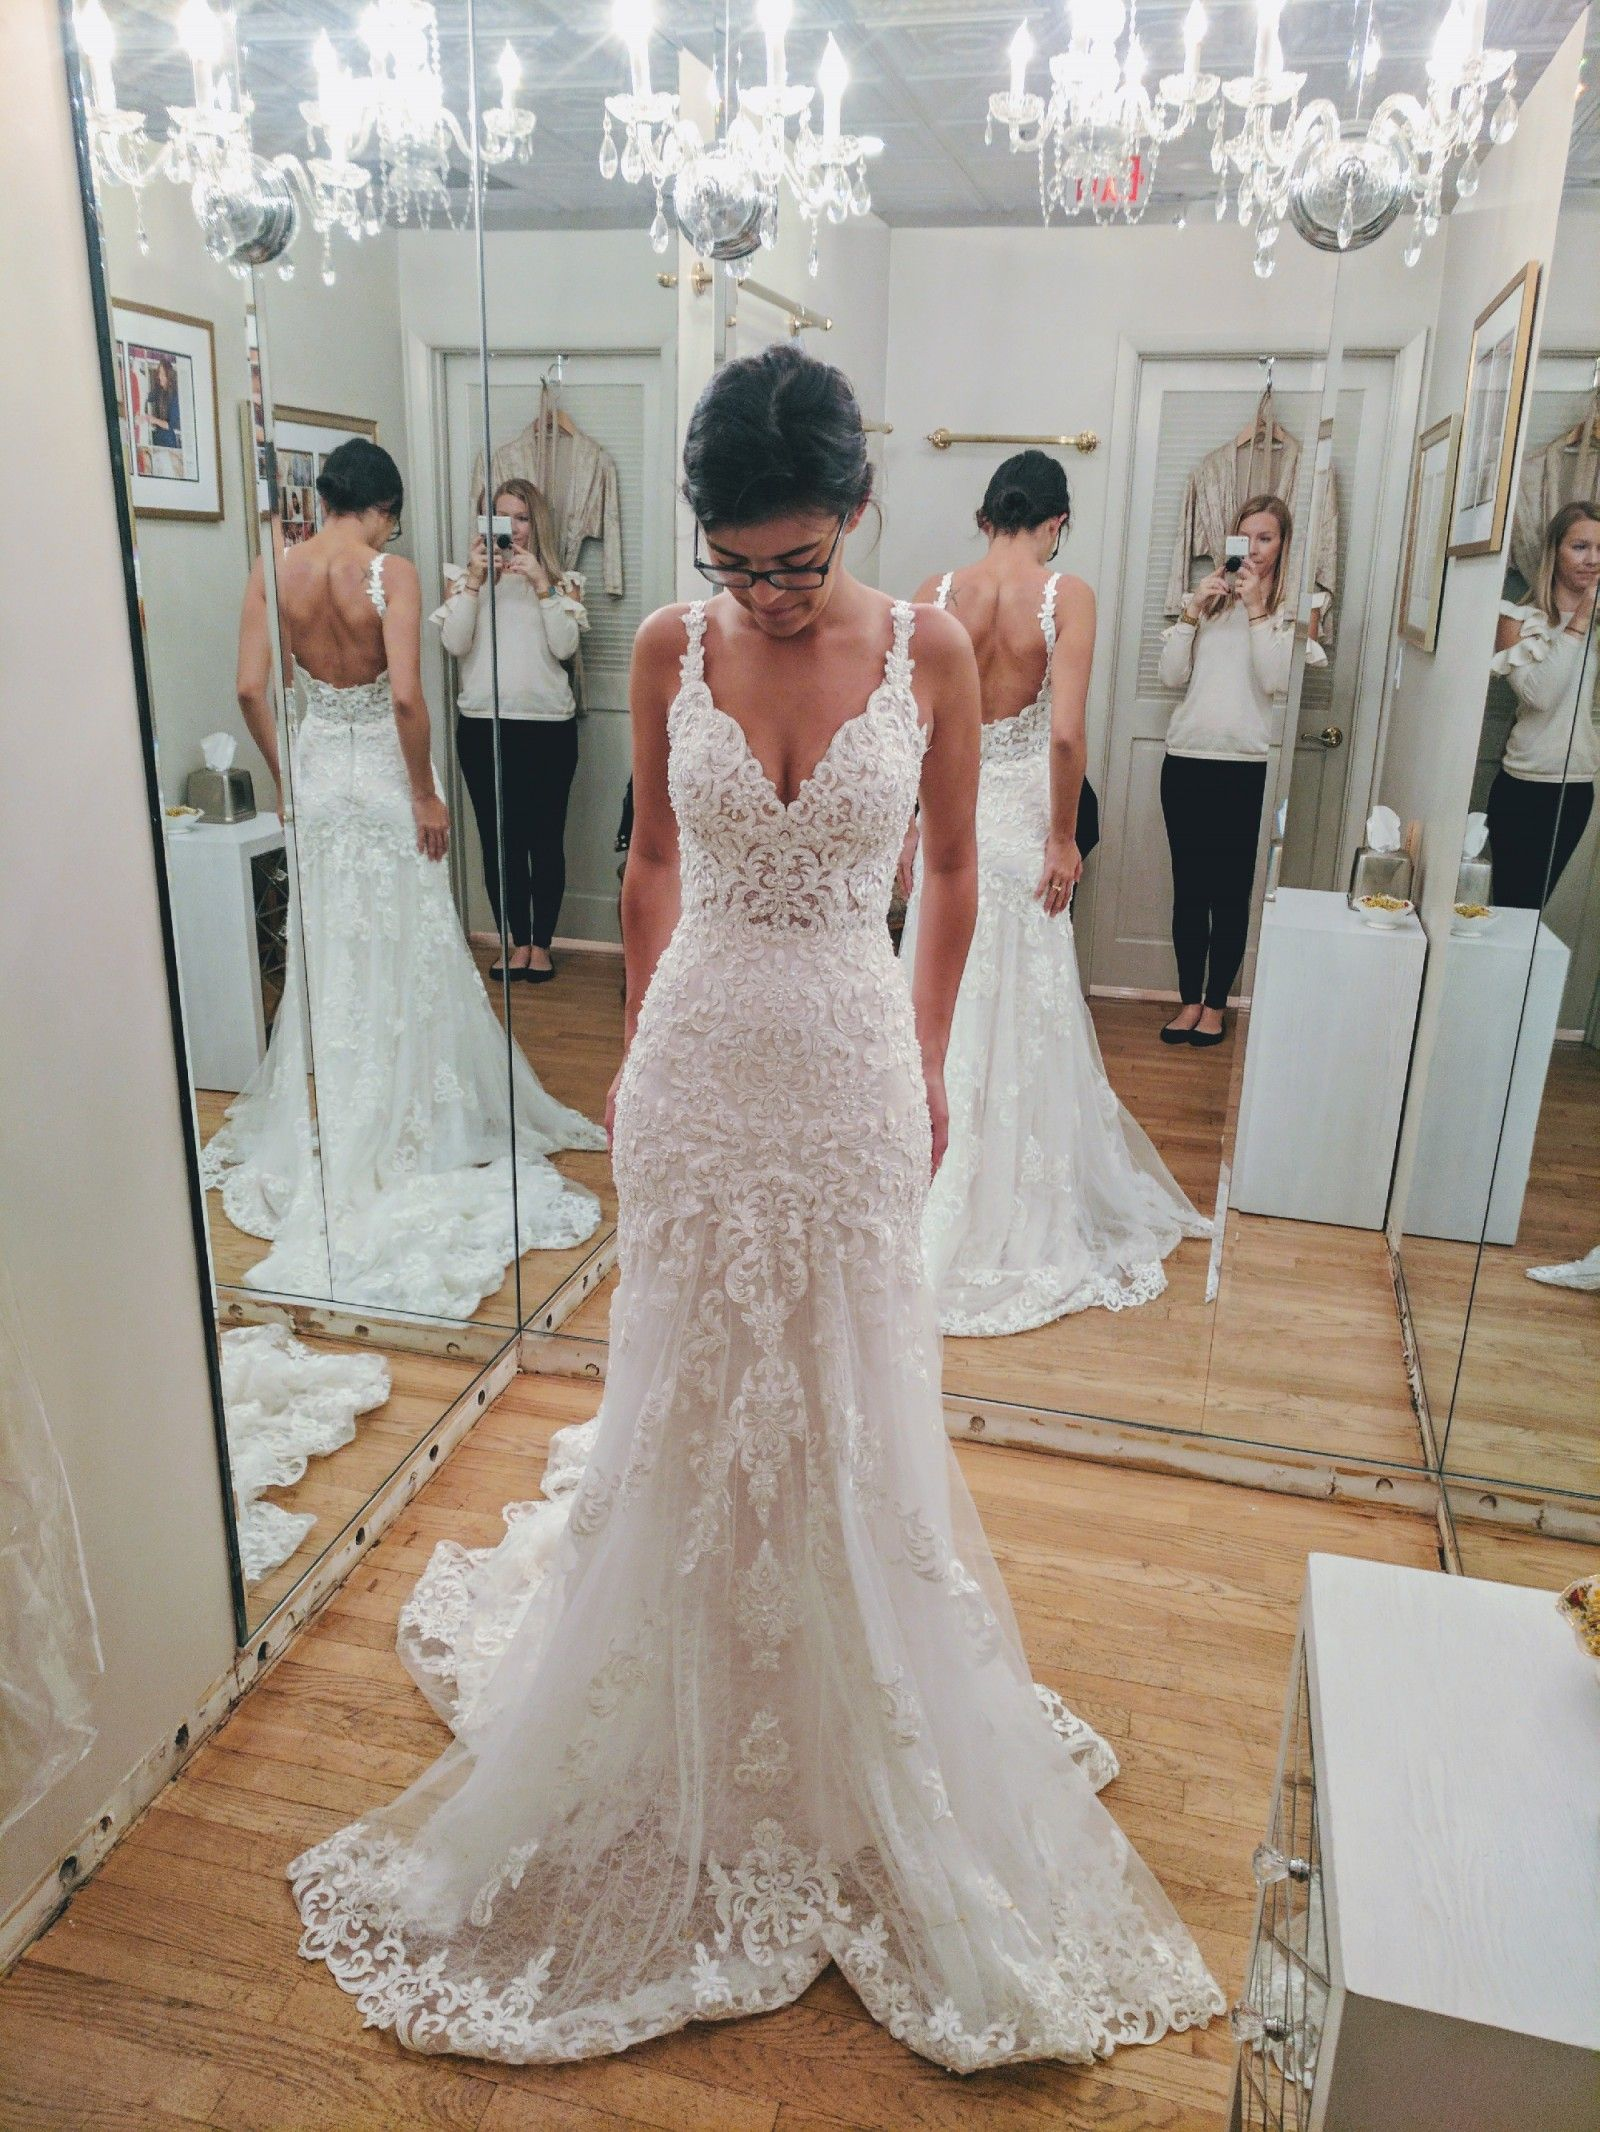 2020 Best Wedding Dress New Dress Places To Get Married Affordable Bridal Gowns